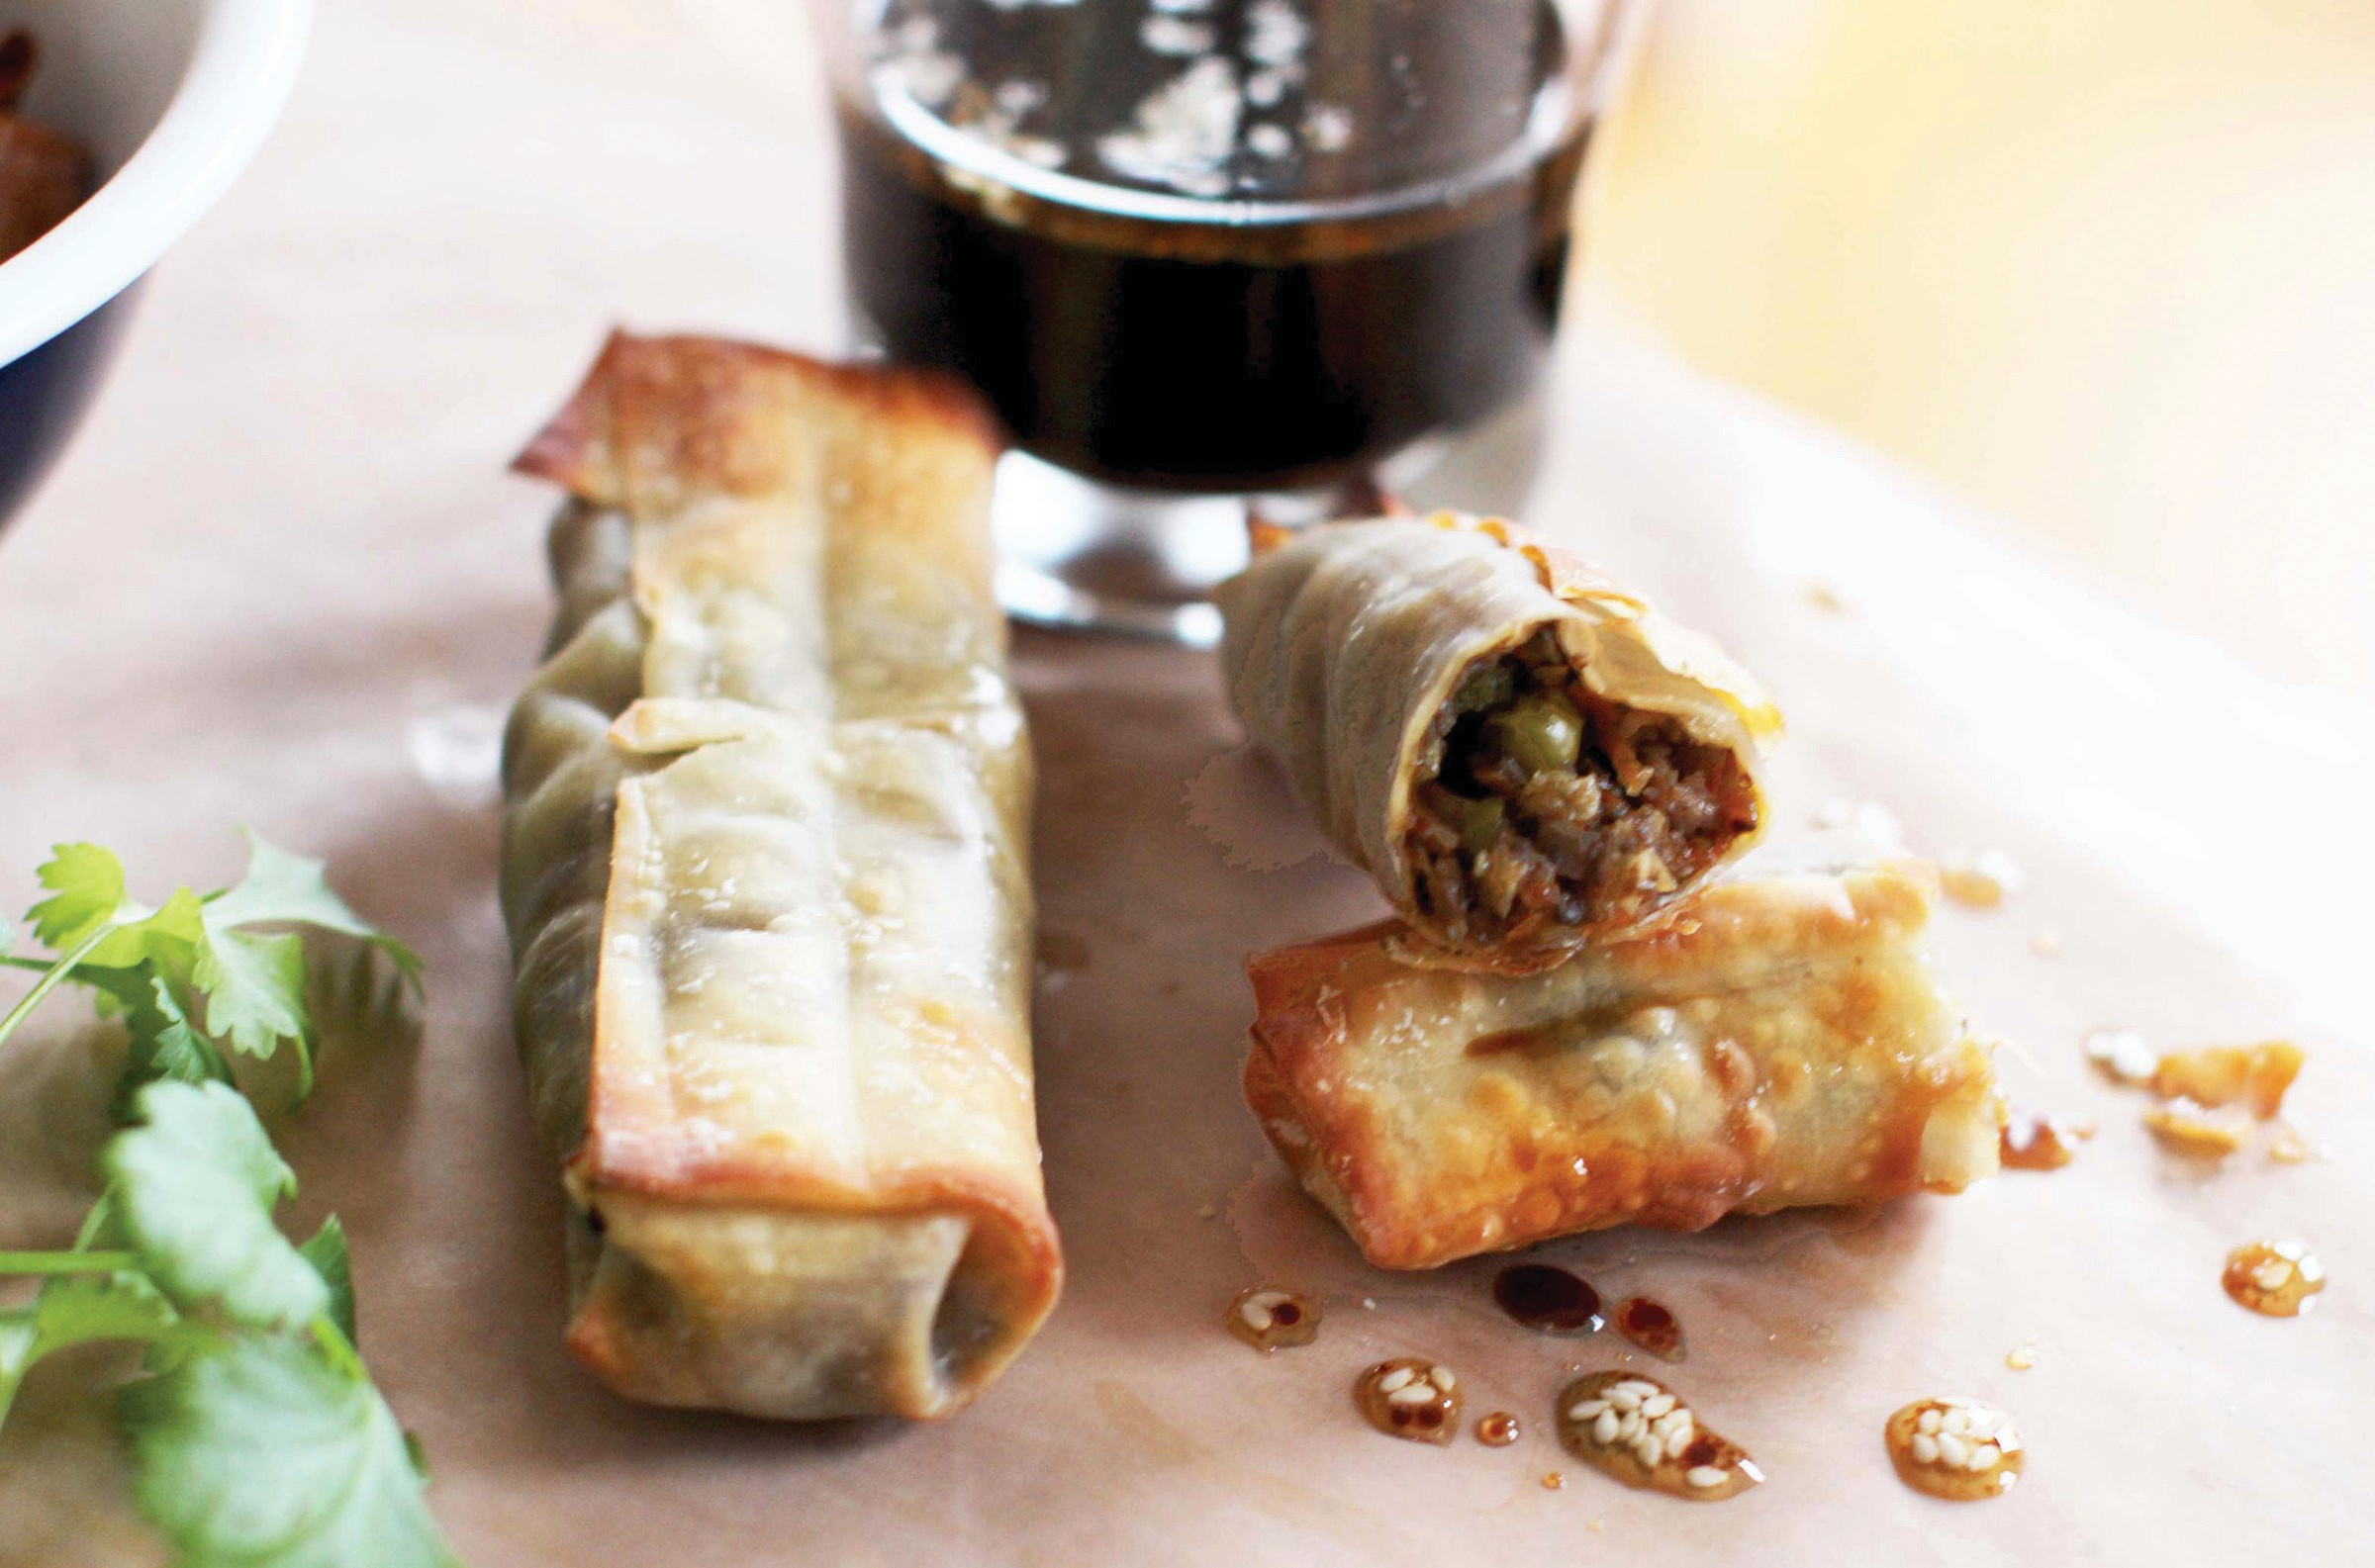 Above photo shows baked egg rolls with sesame-soy dipping sauce.